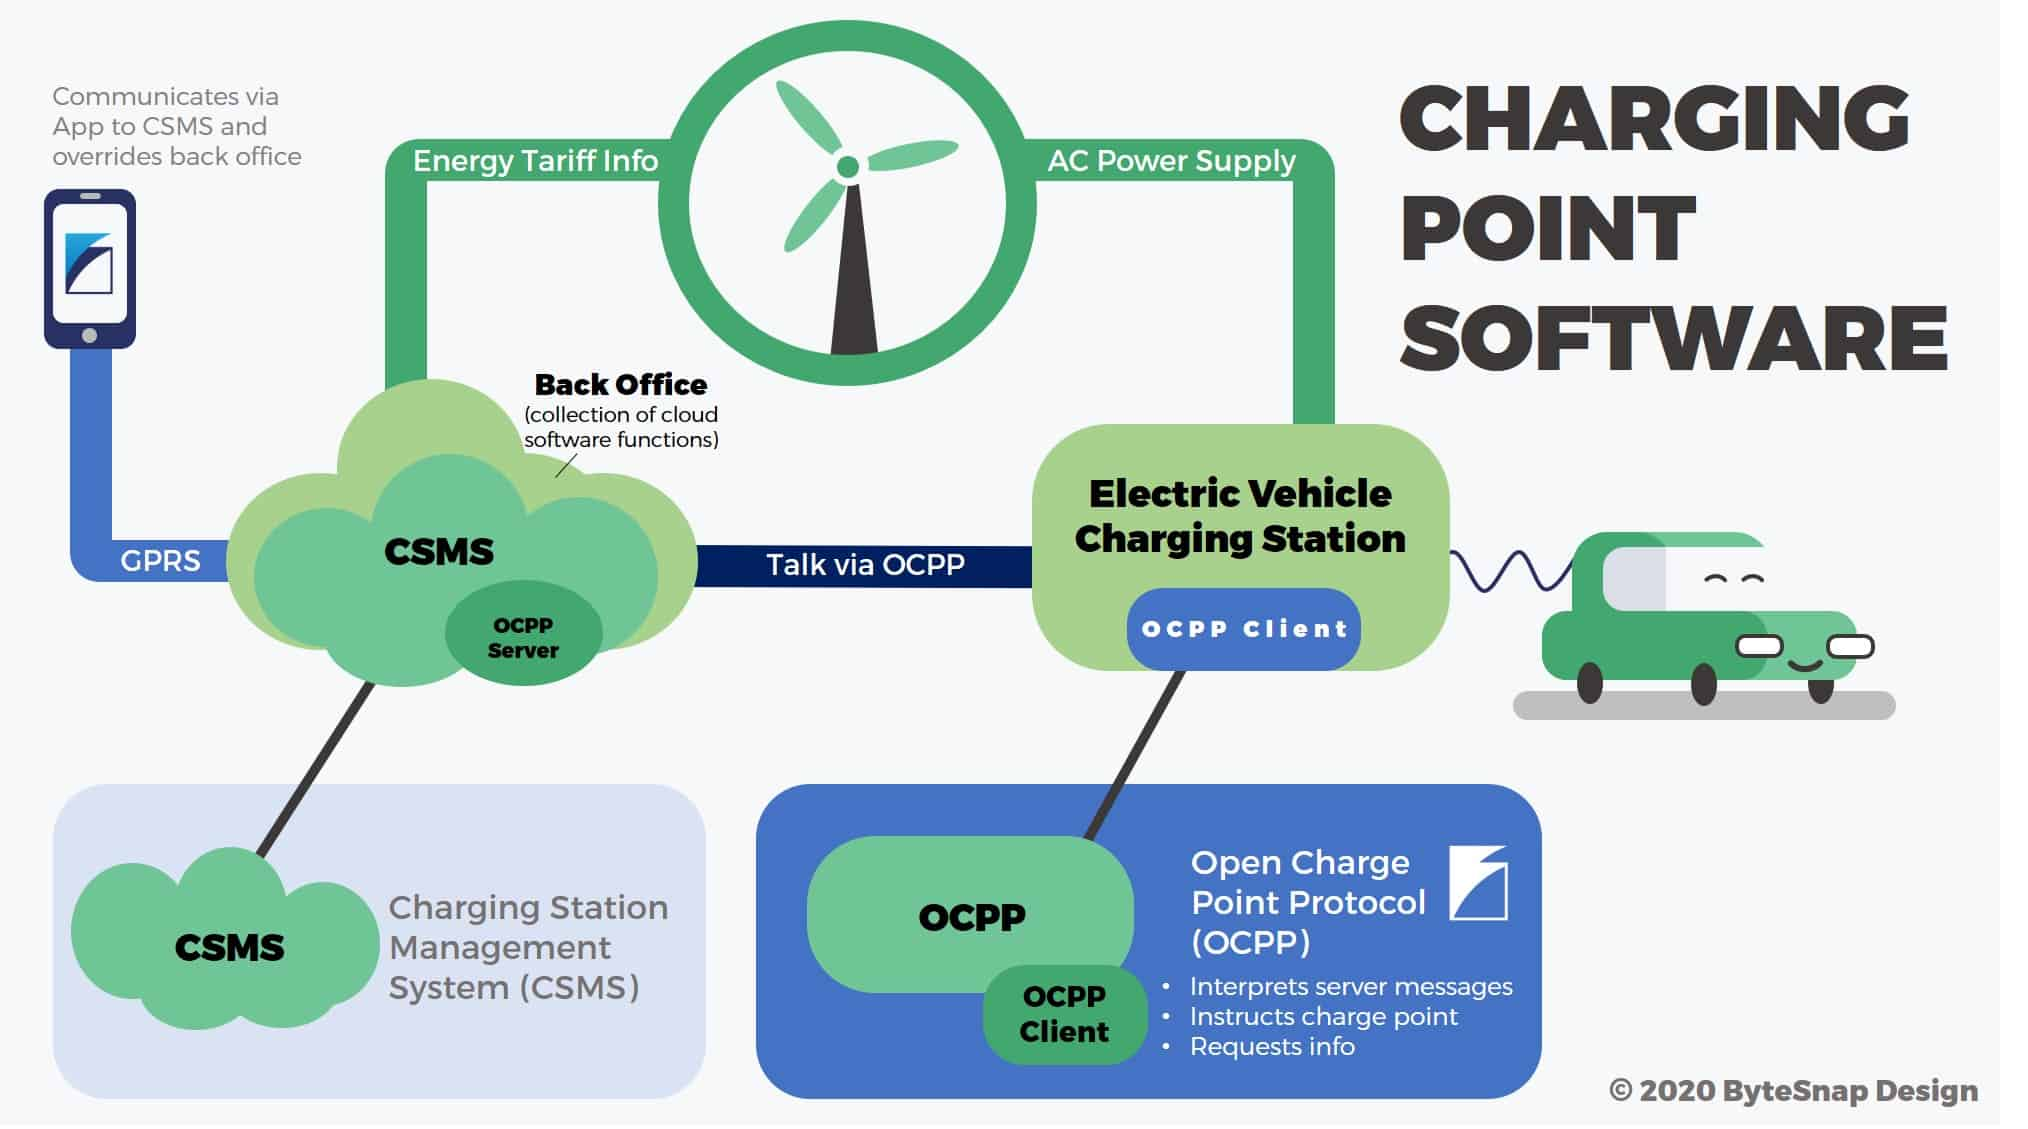 OCPP flowchart charging point software between back office and electric vehicle charging station